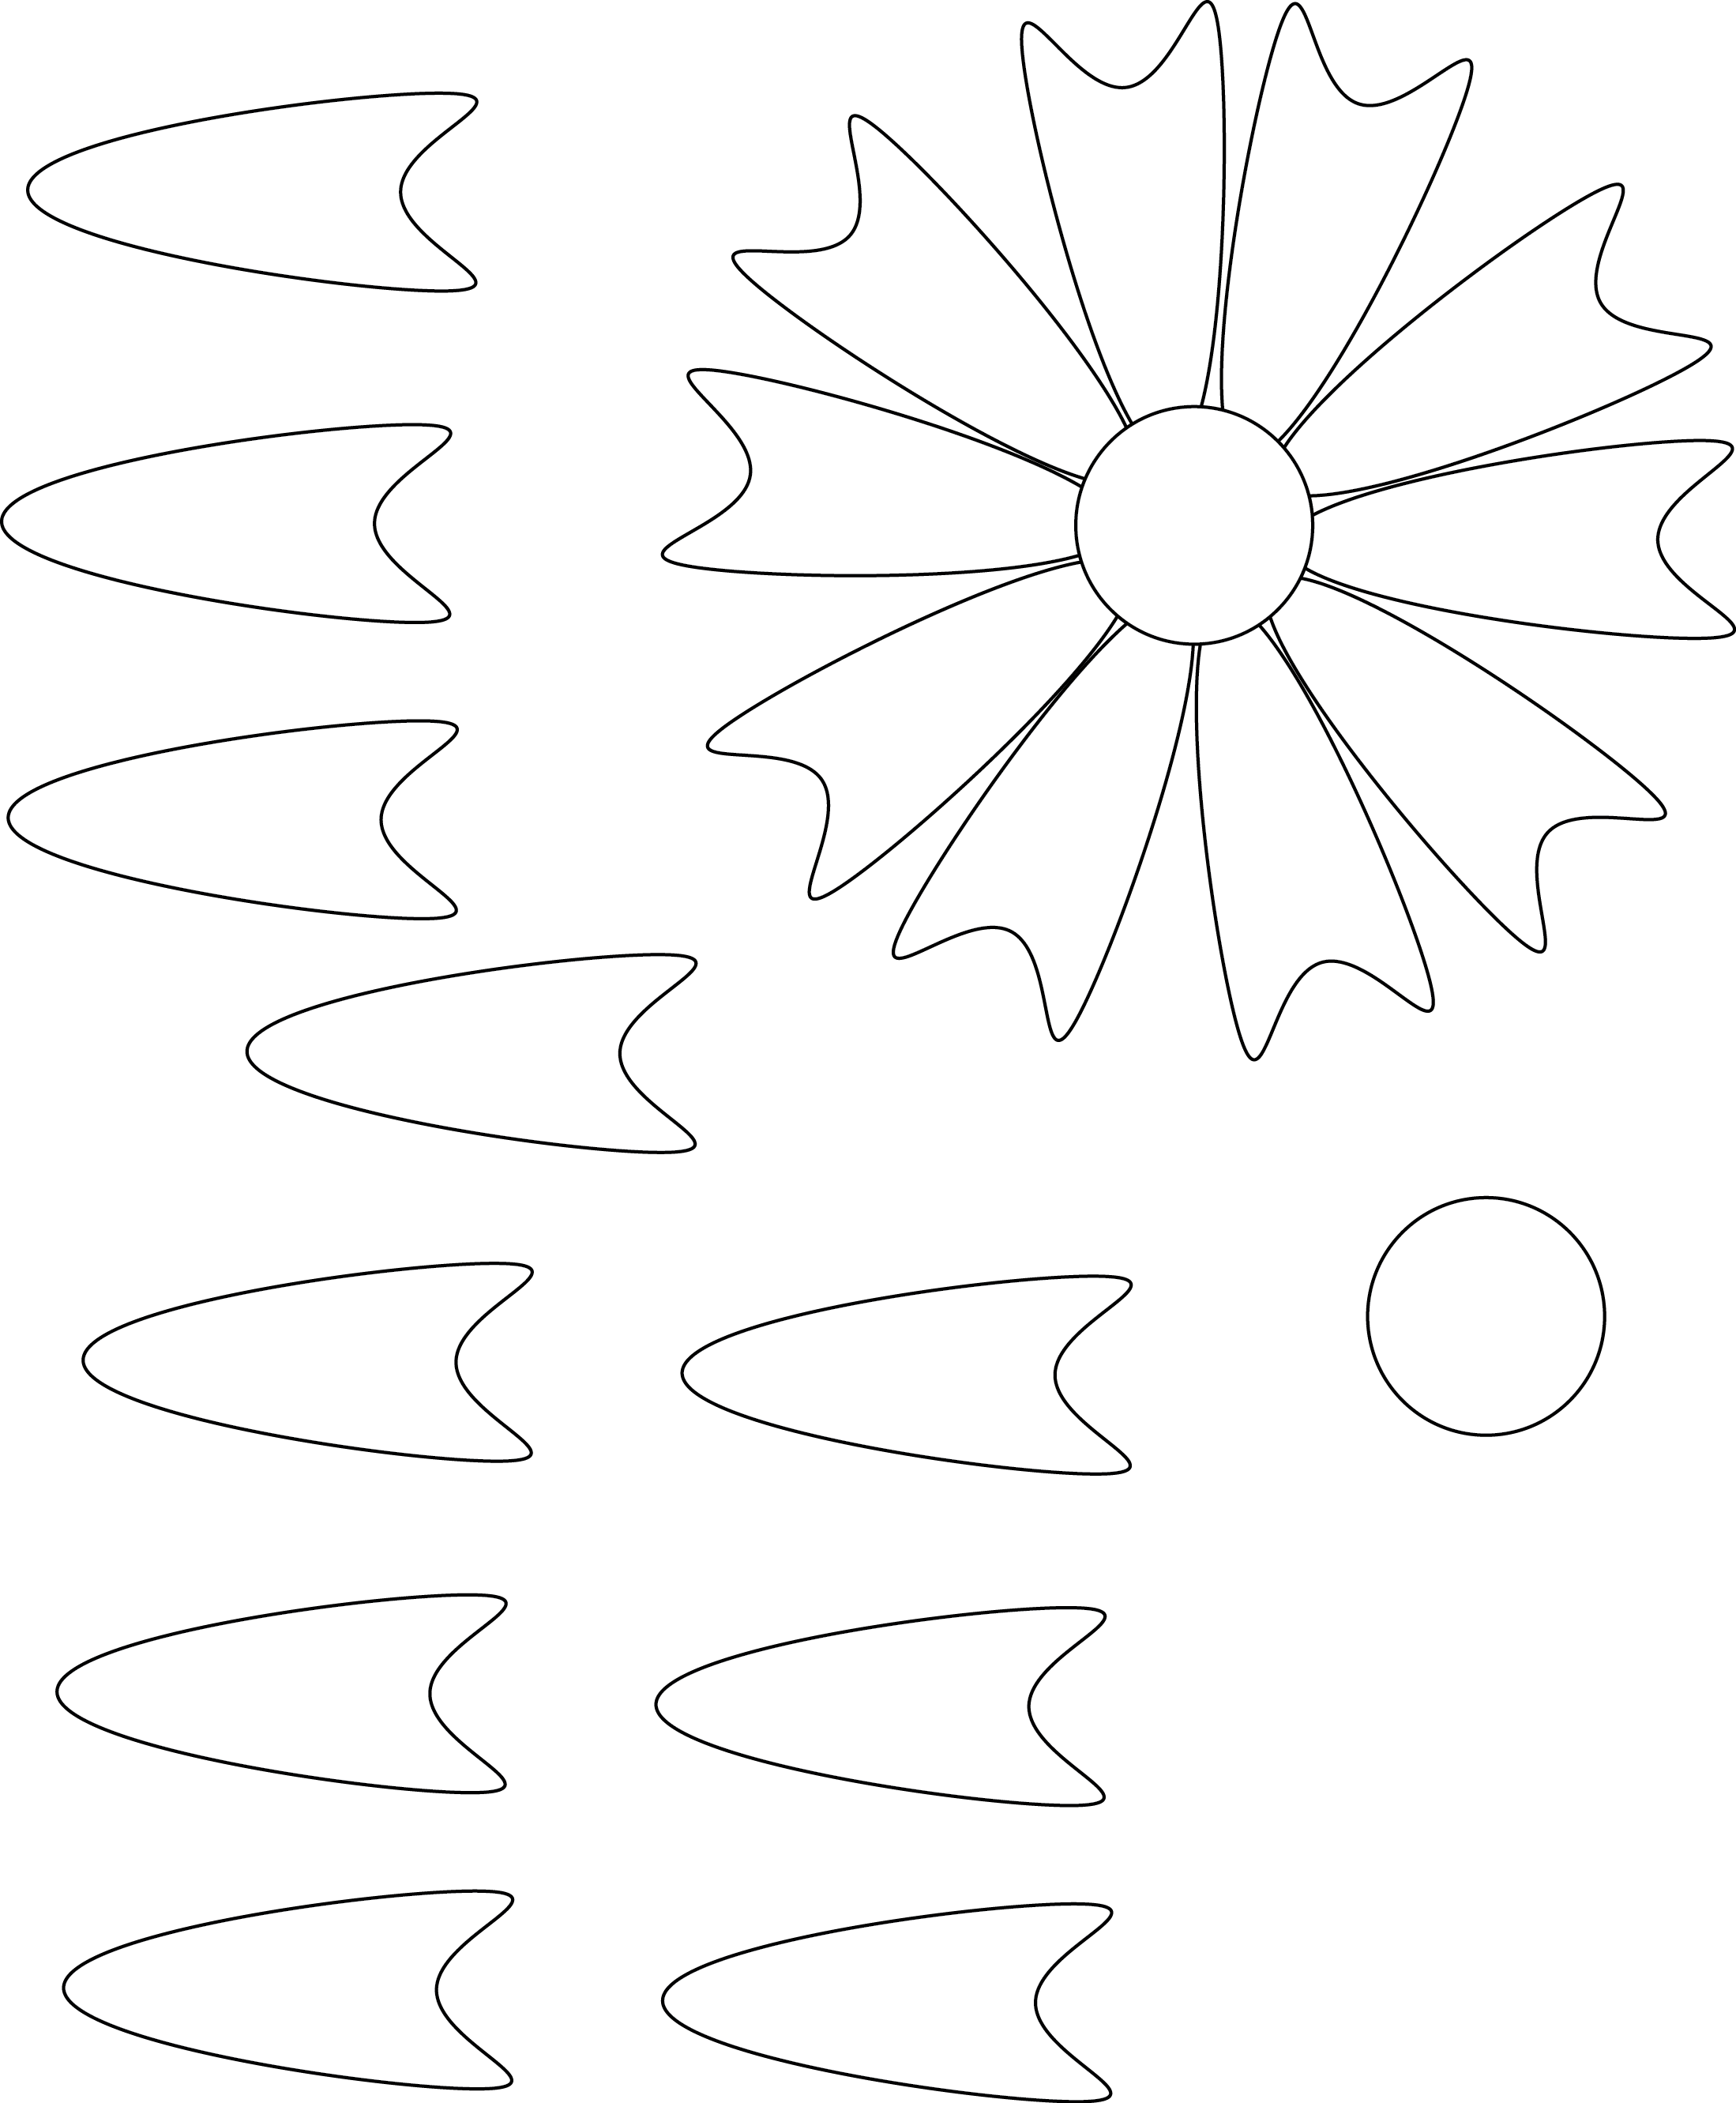 Sunflower template to cut out the image for Paper cut out templates flowers